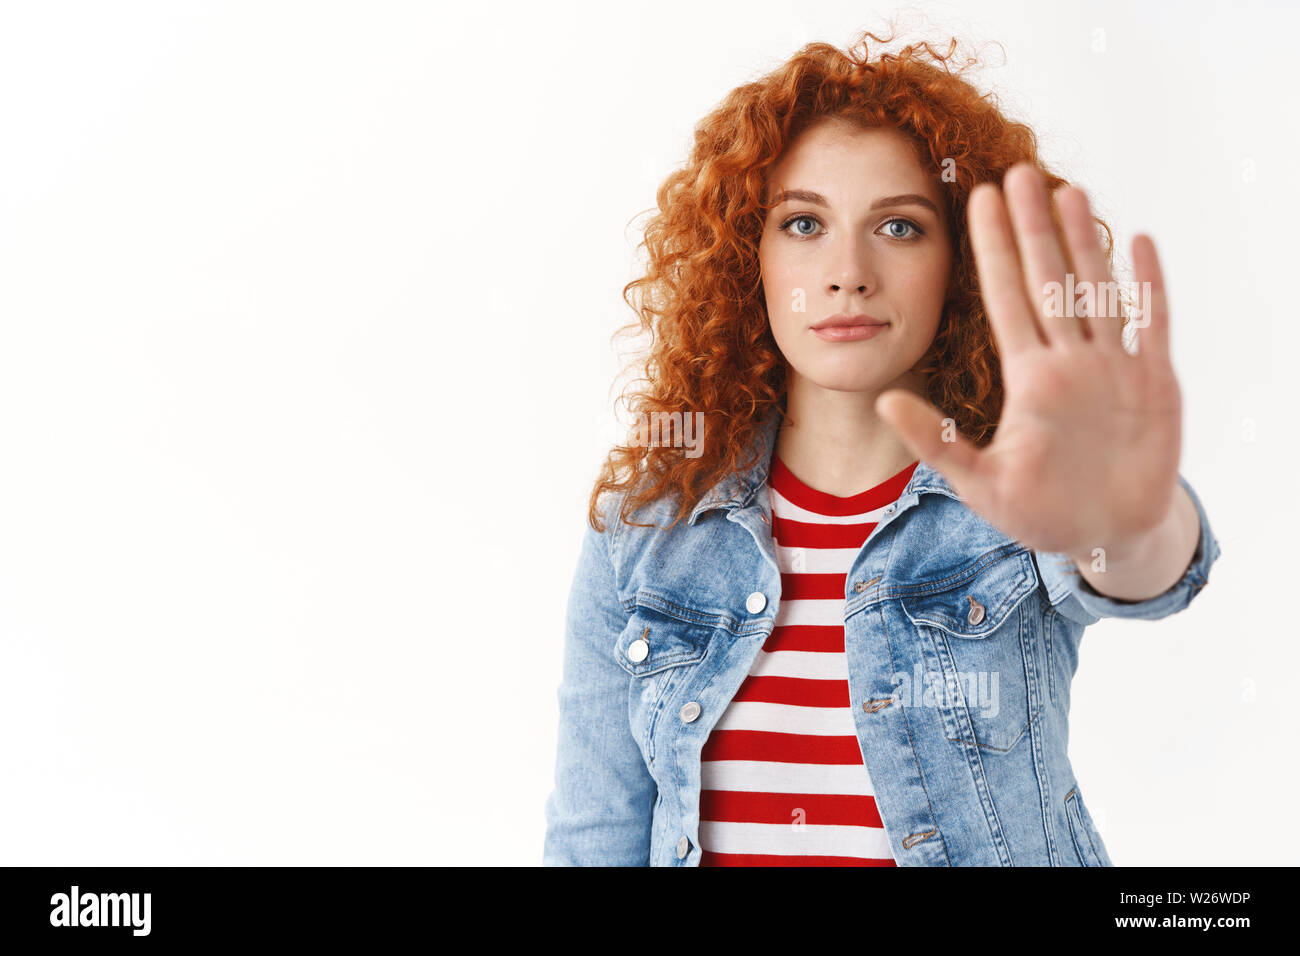 Close-up serious-looking persuasive redhead attractive female model demand stop hold on extend palm camera taboo enough gesture give restriction ban b Stock Photo